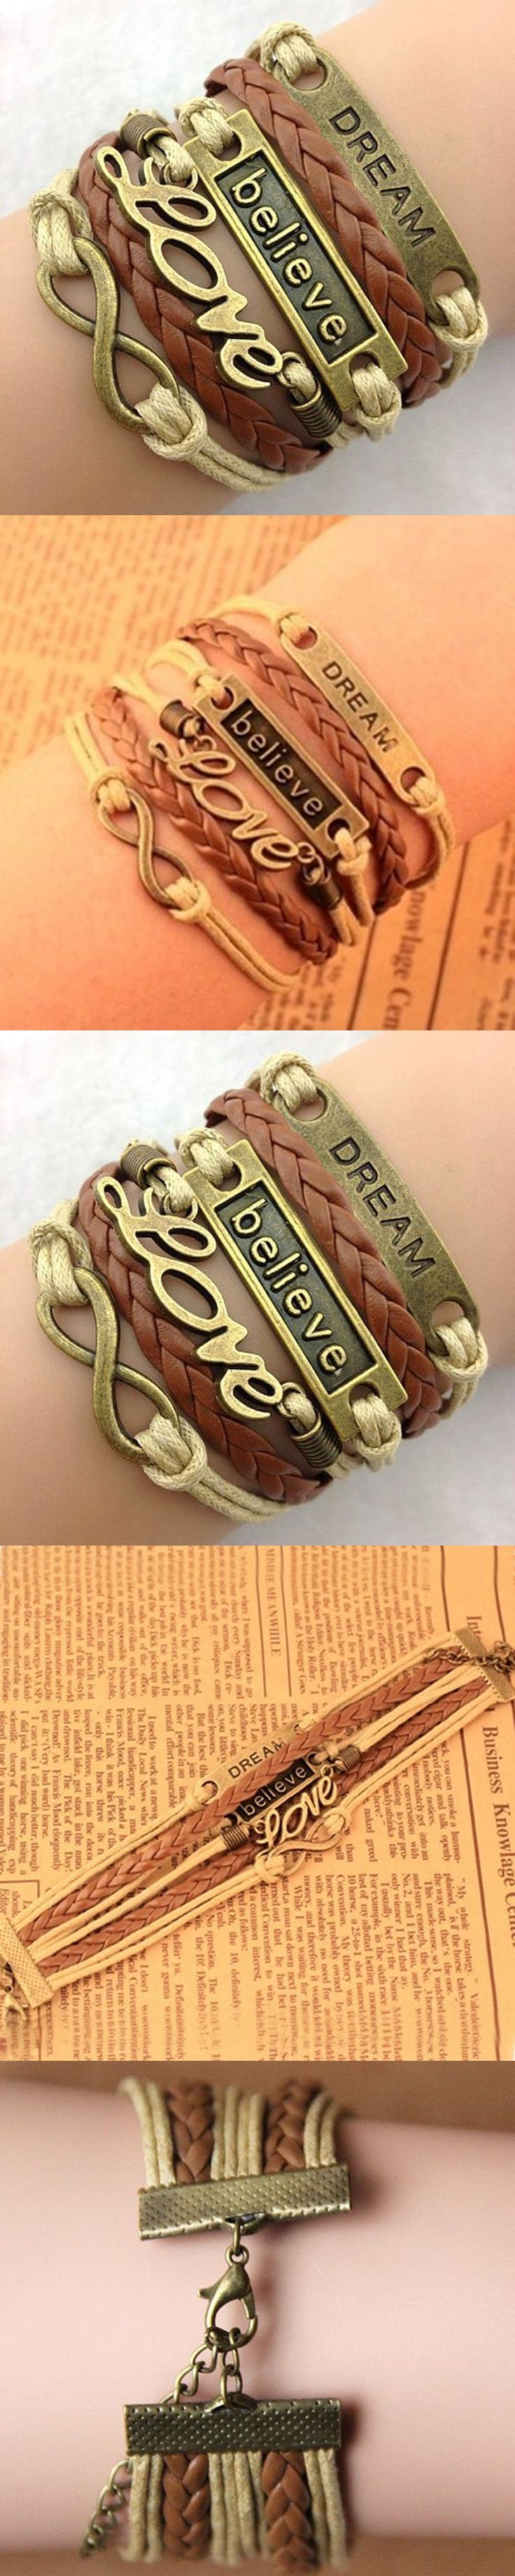 NEW Hot Infinity Love Anchor Leather Cute Charm Bracelet Bronze DIY Styling Accessories